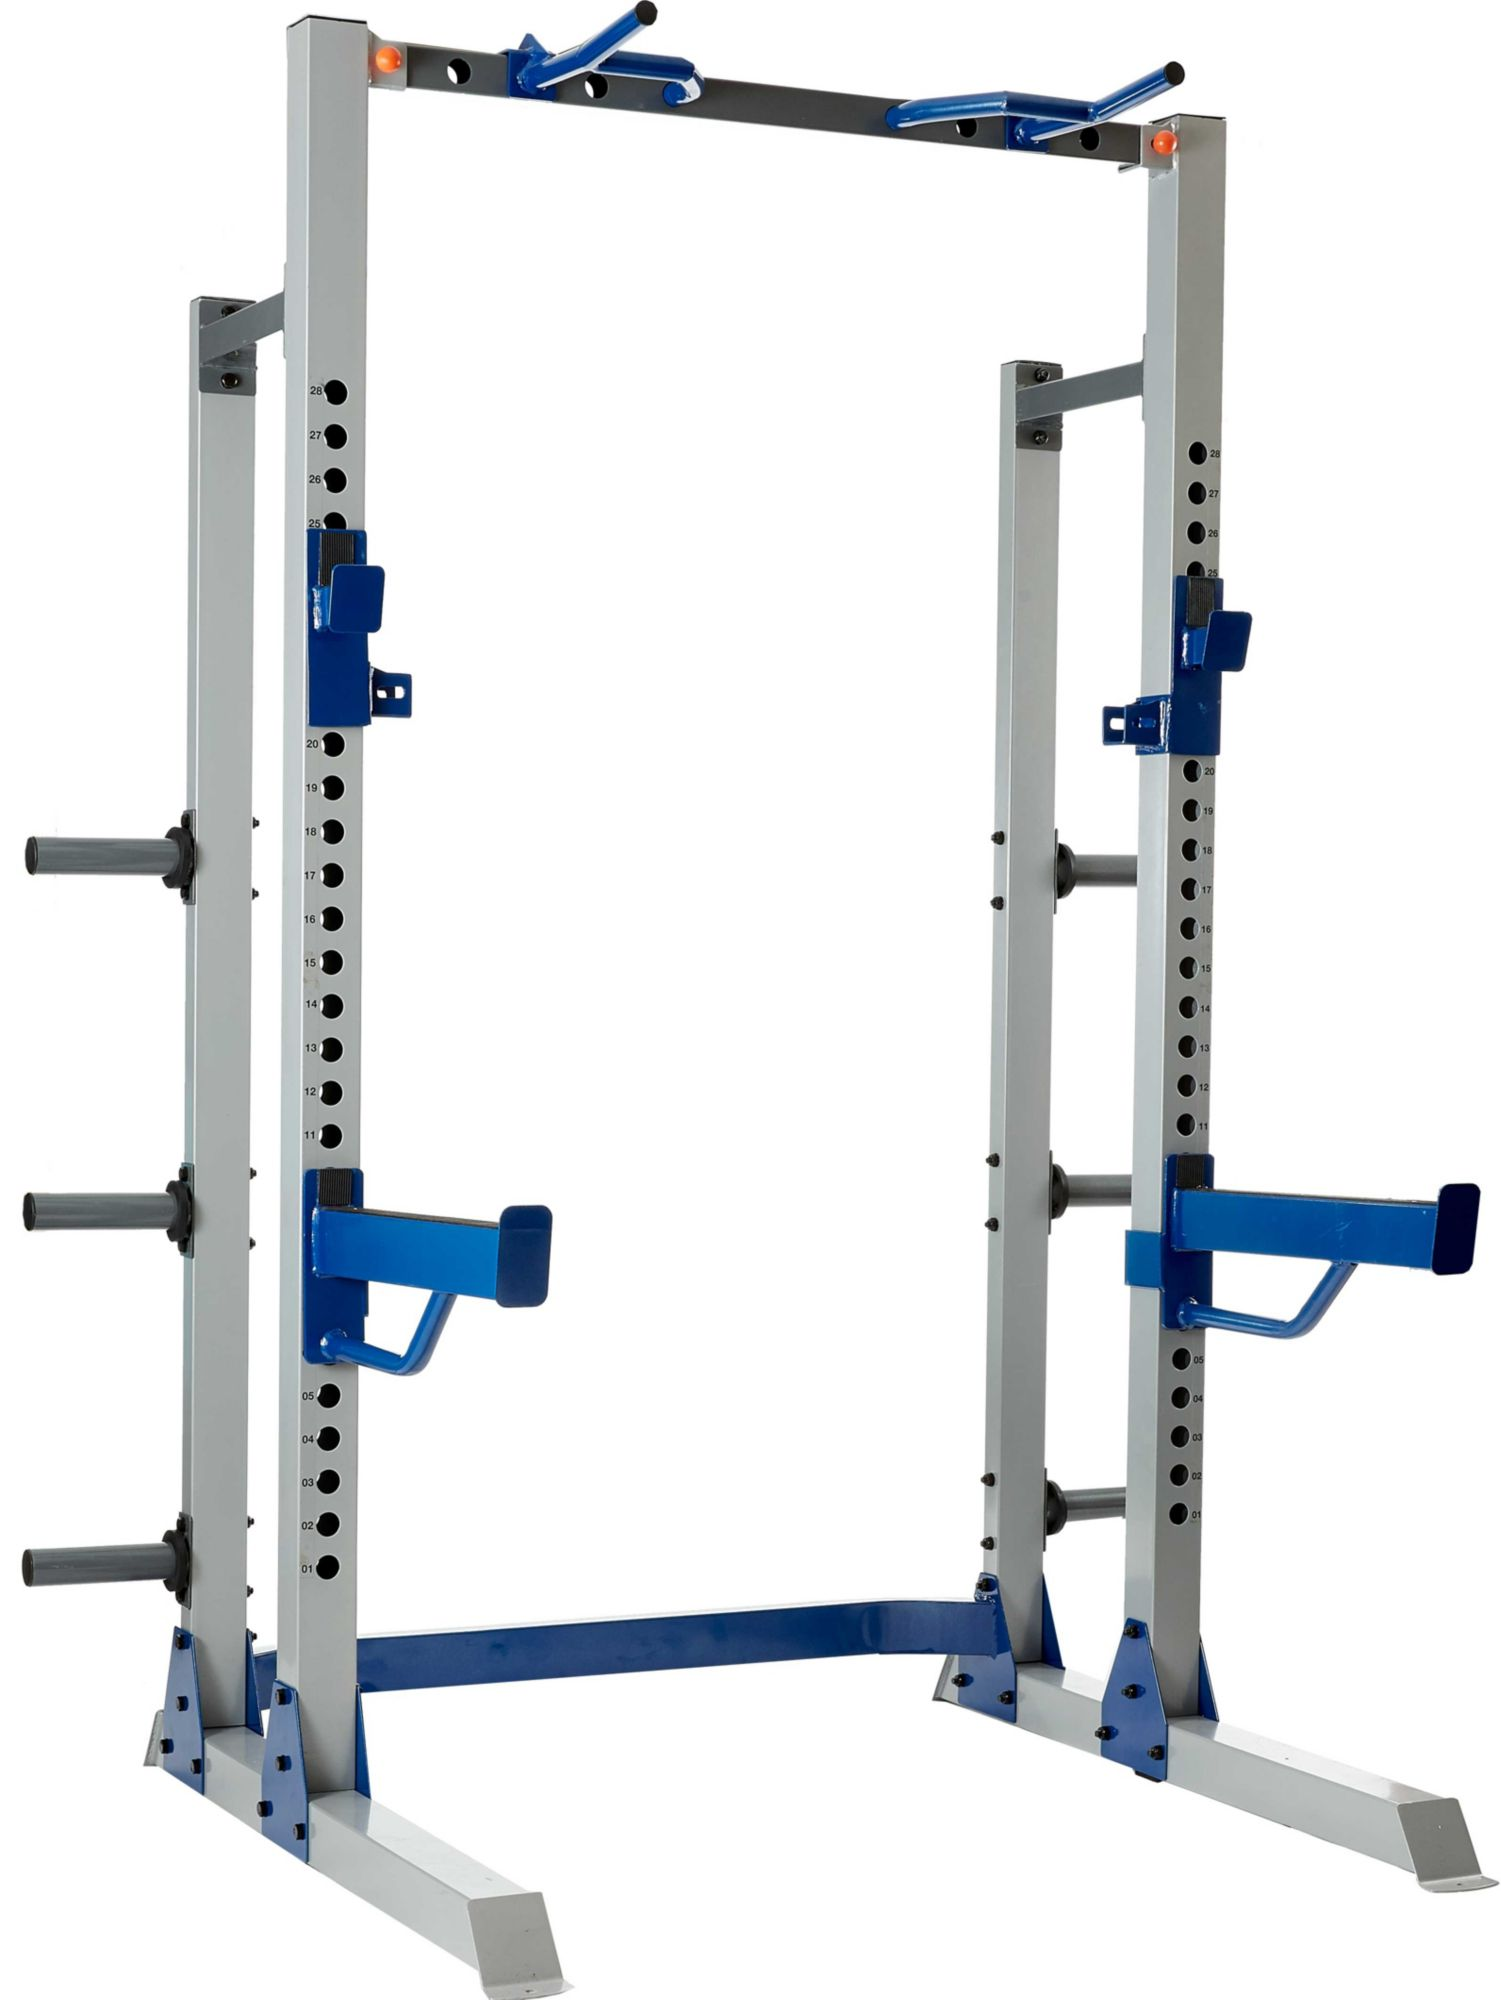 Fitness gear pro half rack review